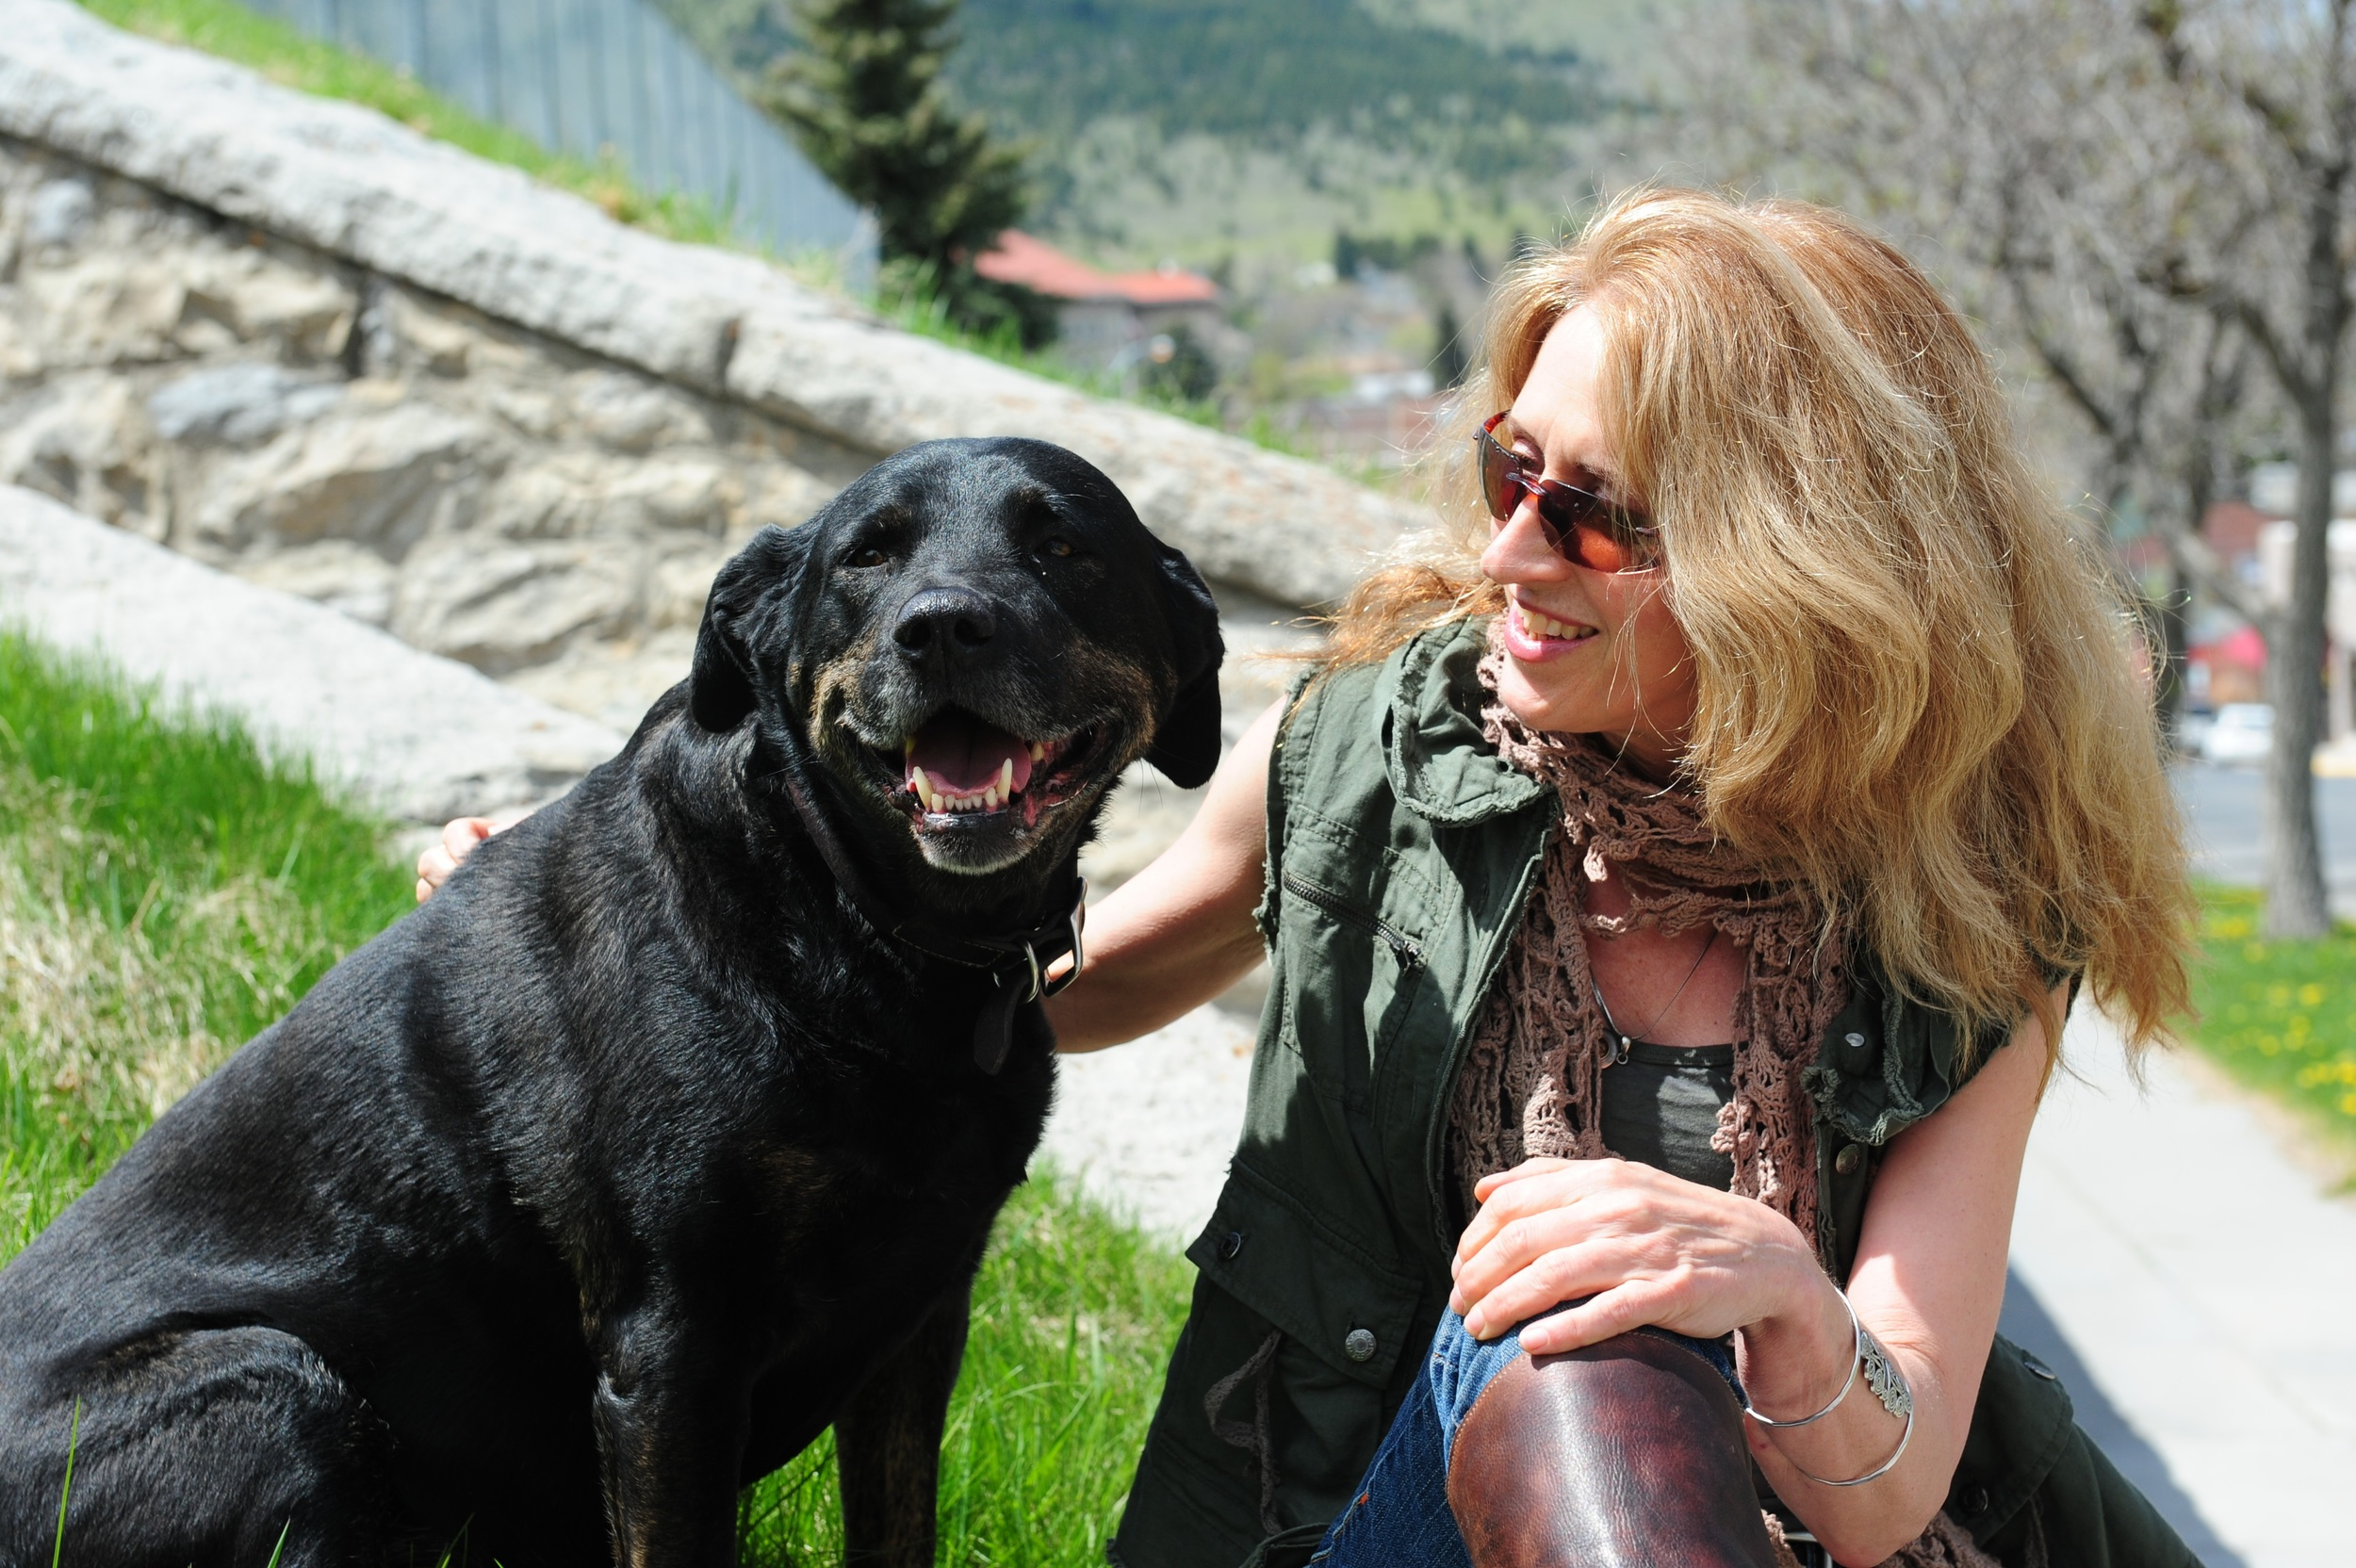 K.M. and her dog, Carmen